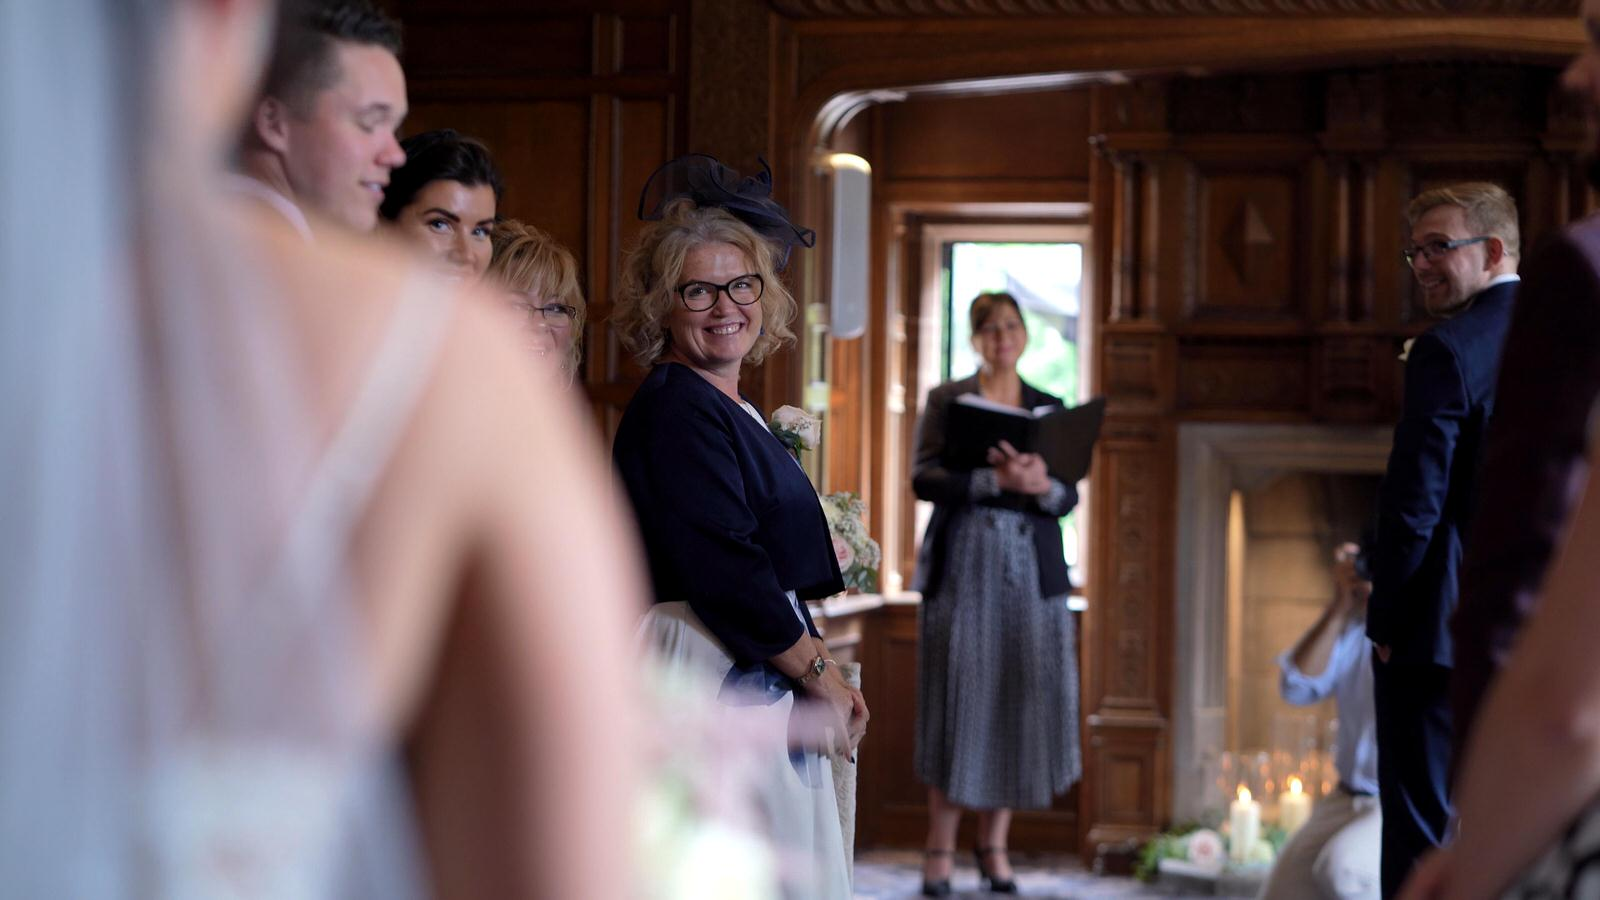 guests first look of bride during ceremony at Inglewood